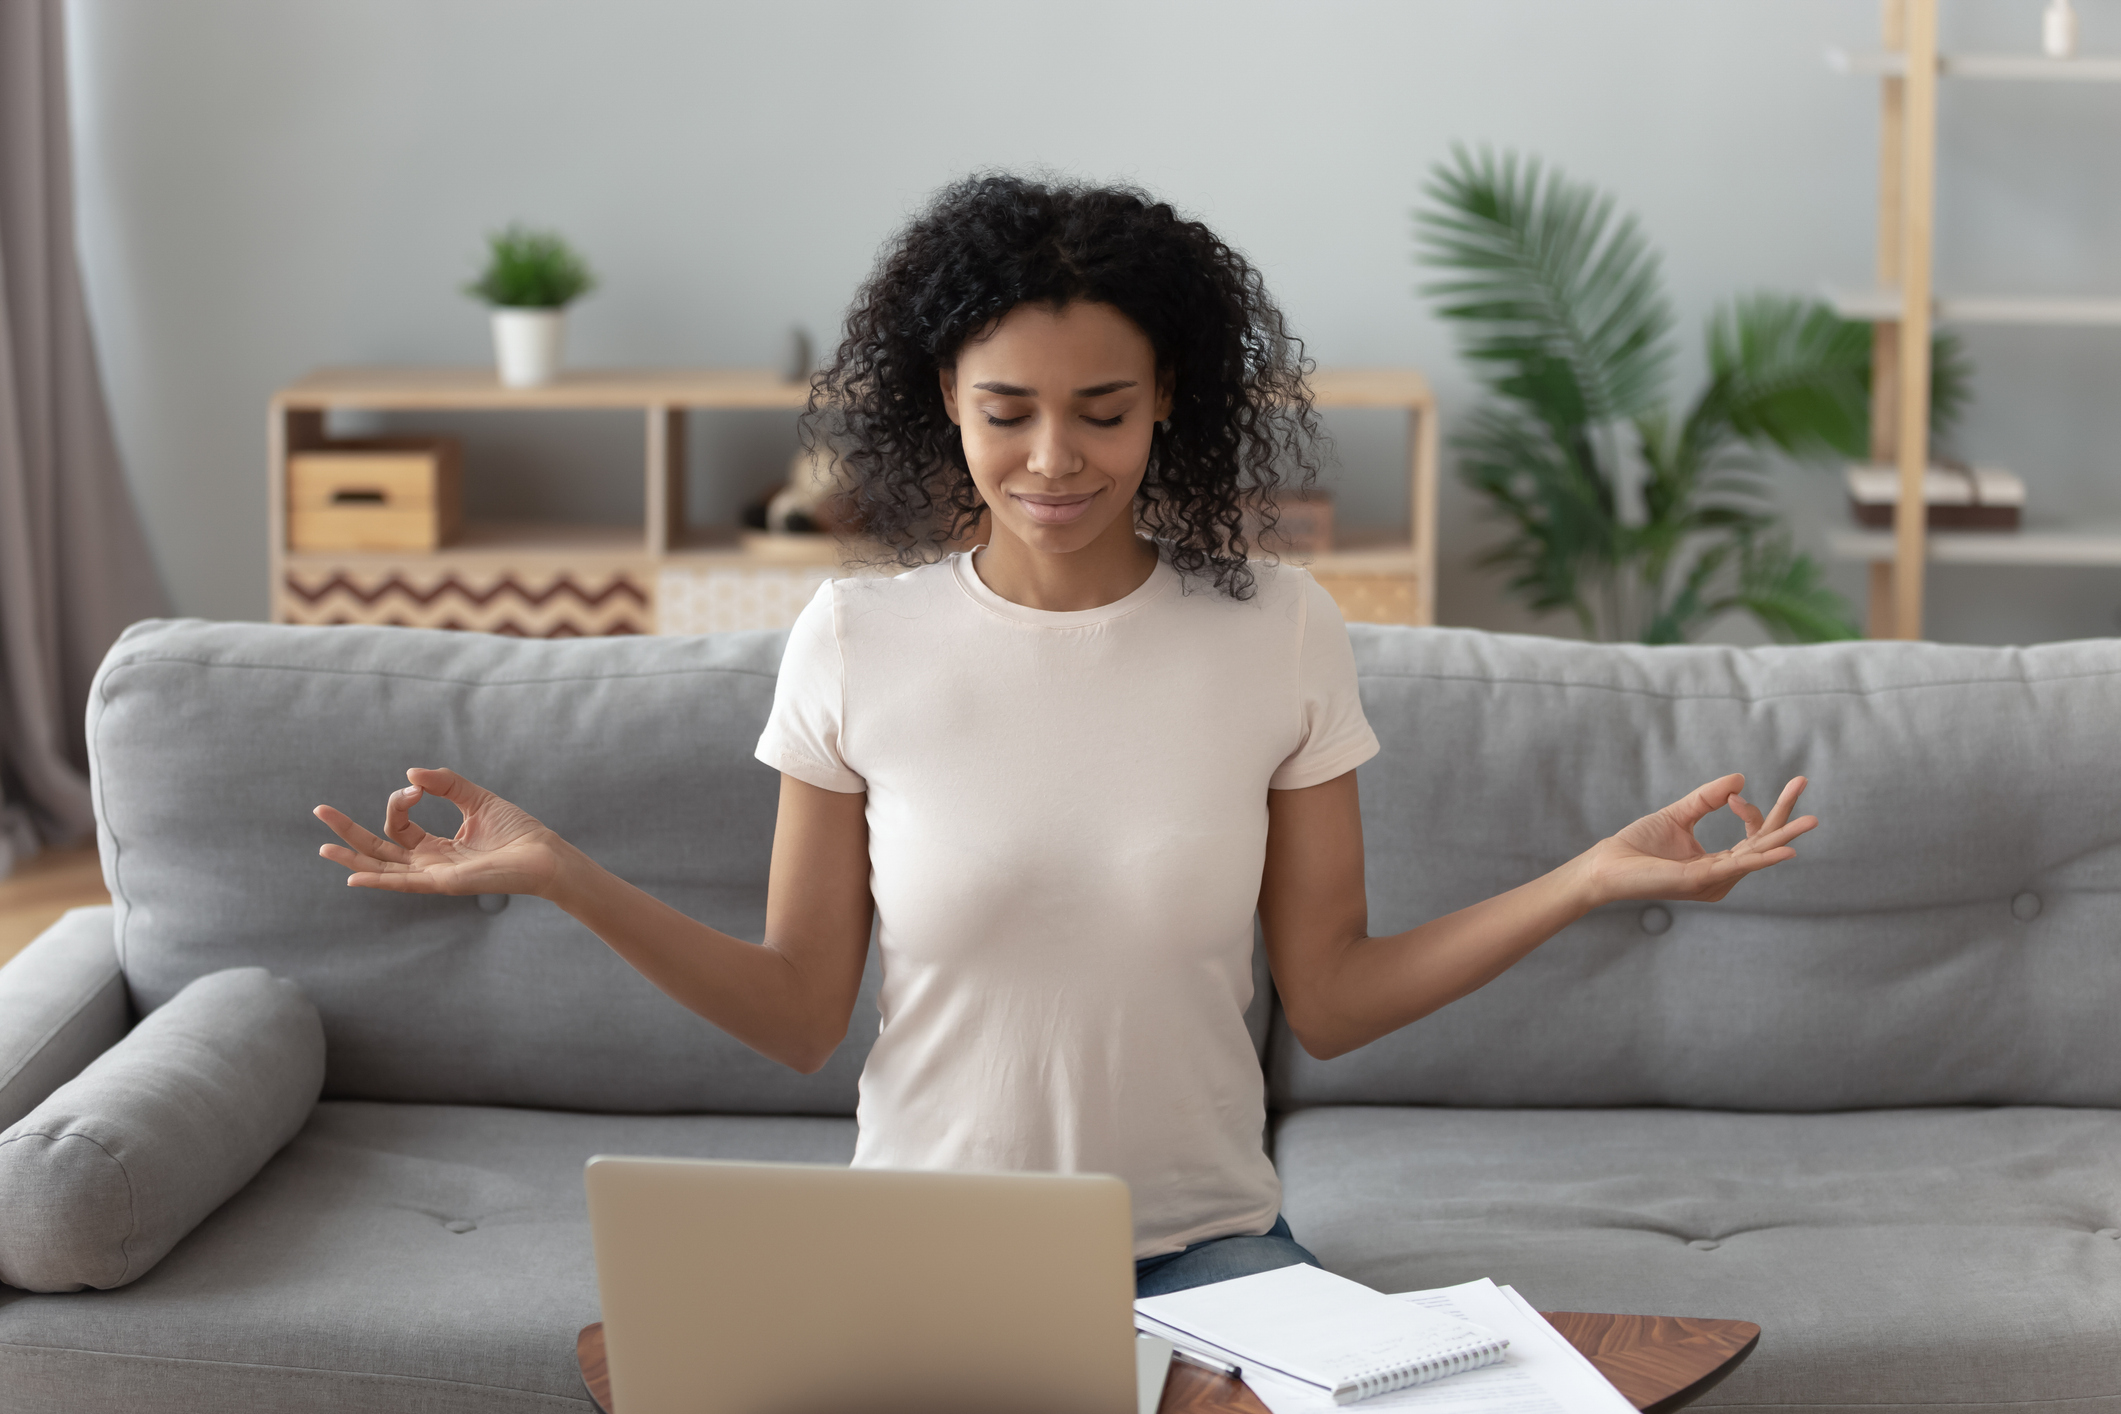 Serene happy calm african girl student sit on couch take break from computer work study do yoga exercise breath fresh air at home, mindful healthy woman relax meditating feel no stress free concept